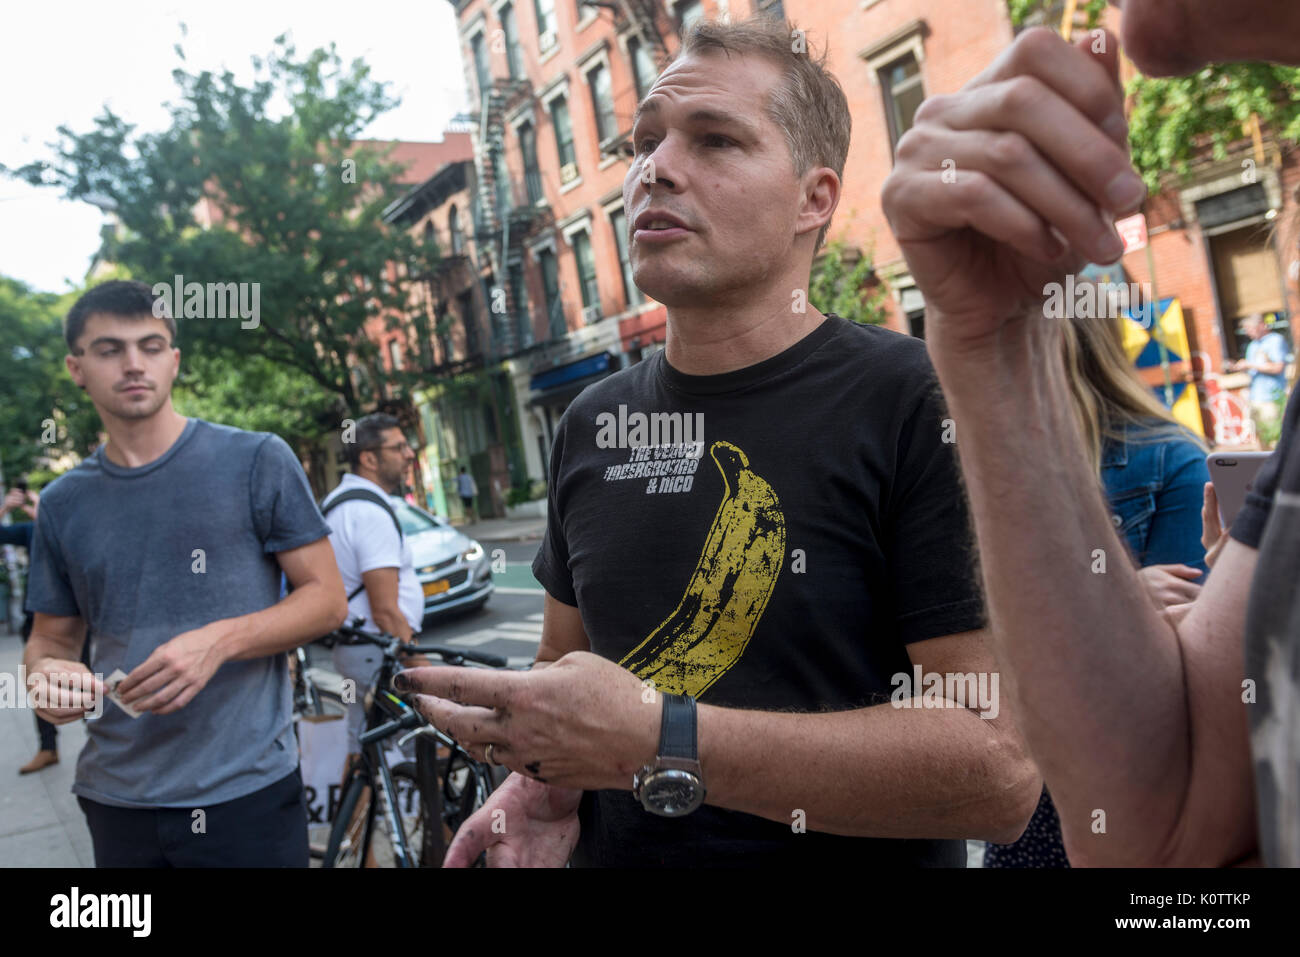 """New York, USA. 23rd Aug, 2017. American Artist Shepard Fairy discusses his work with fans and passersby after creating his newest mural of Blondie in the East Village. The mural features Debbie Harry, lead singer for the rock group Blondie, who got their start in 1979 at CBGB which was located across the street. Fairy's work is also featured in Blondie's latest album """"Polinator"""" which was released in May 2017 Credit: Stacy Walsh Rosenstock/Alamy Live News - Stock Image"""